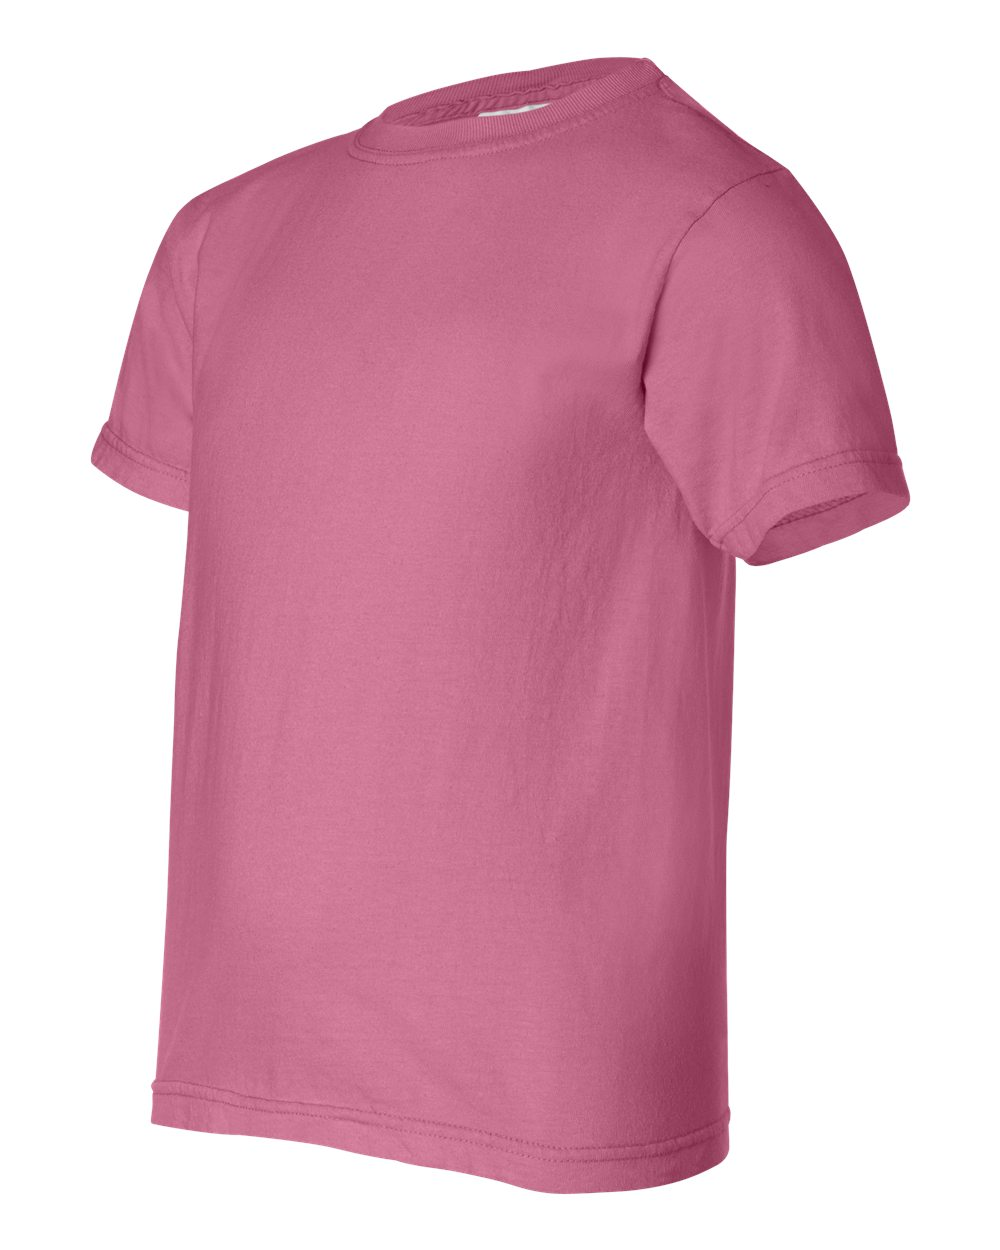 image shirts comforter cotton color sleeve comfort at t online products shirt colors customink com styles design catalog custom long large detail